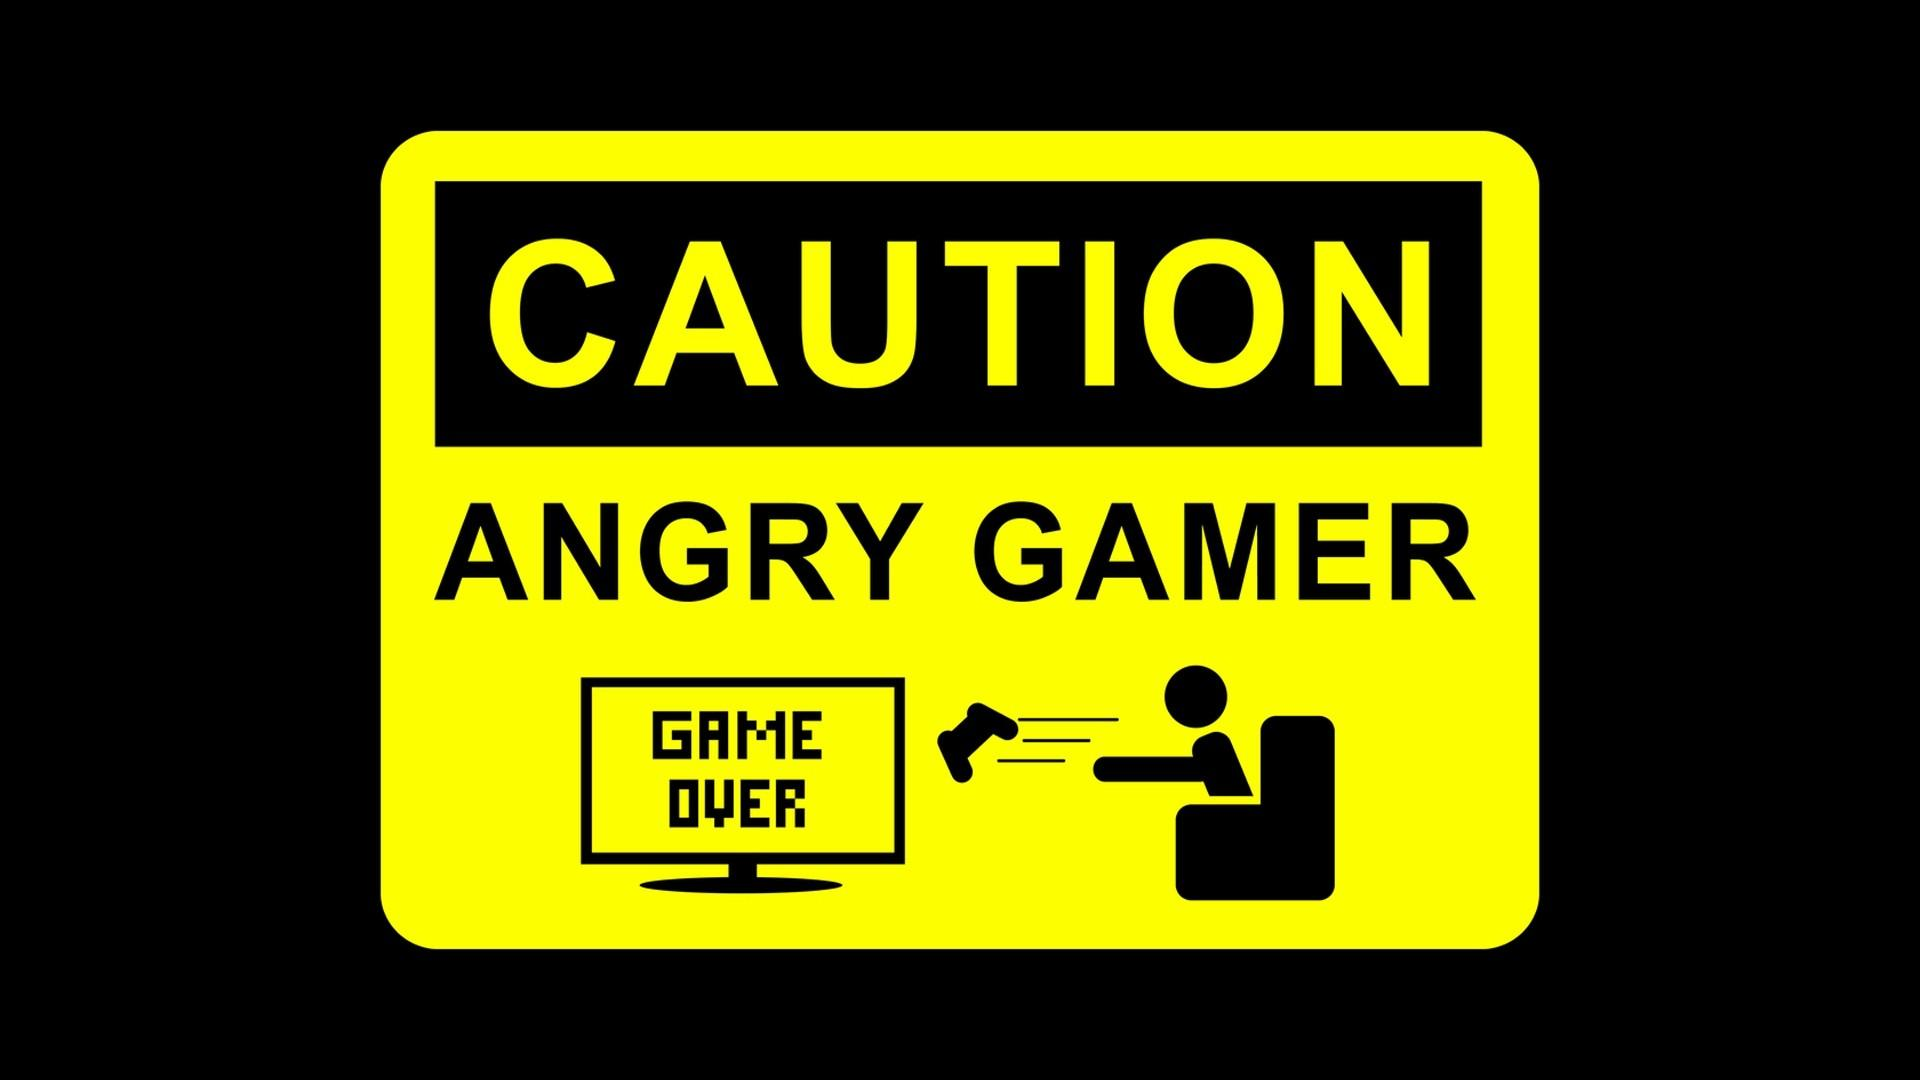 CAUTION Angry Gamer HD Wallpaper 1920x1080